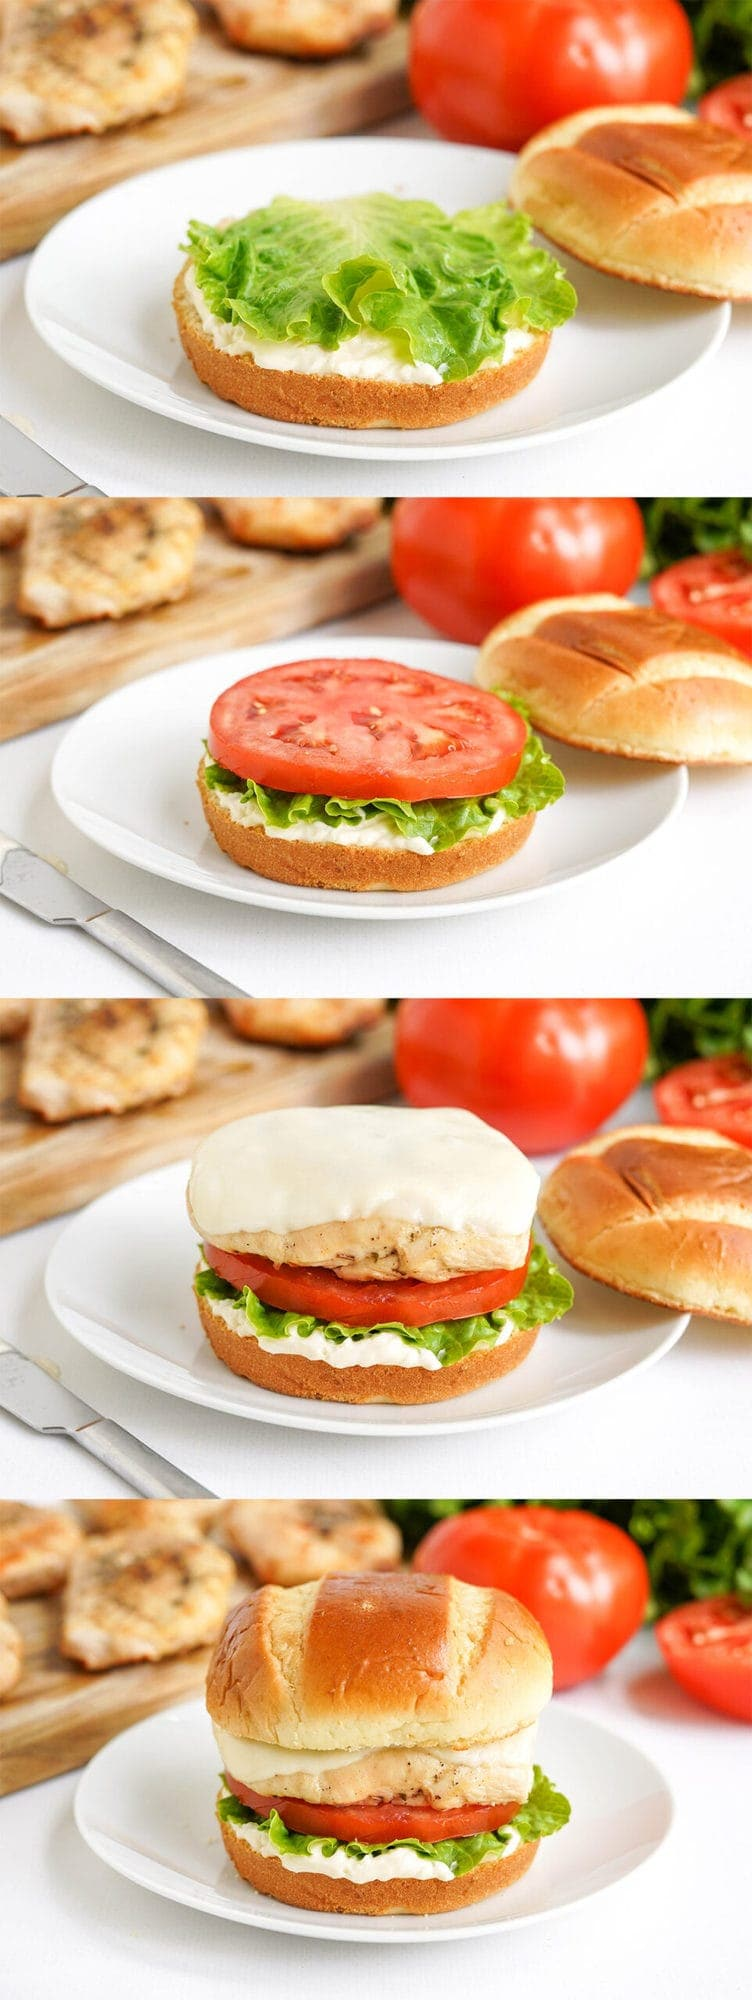 collage of images showing how to assemble a grilled chicken sandwich